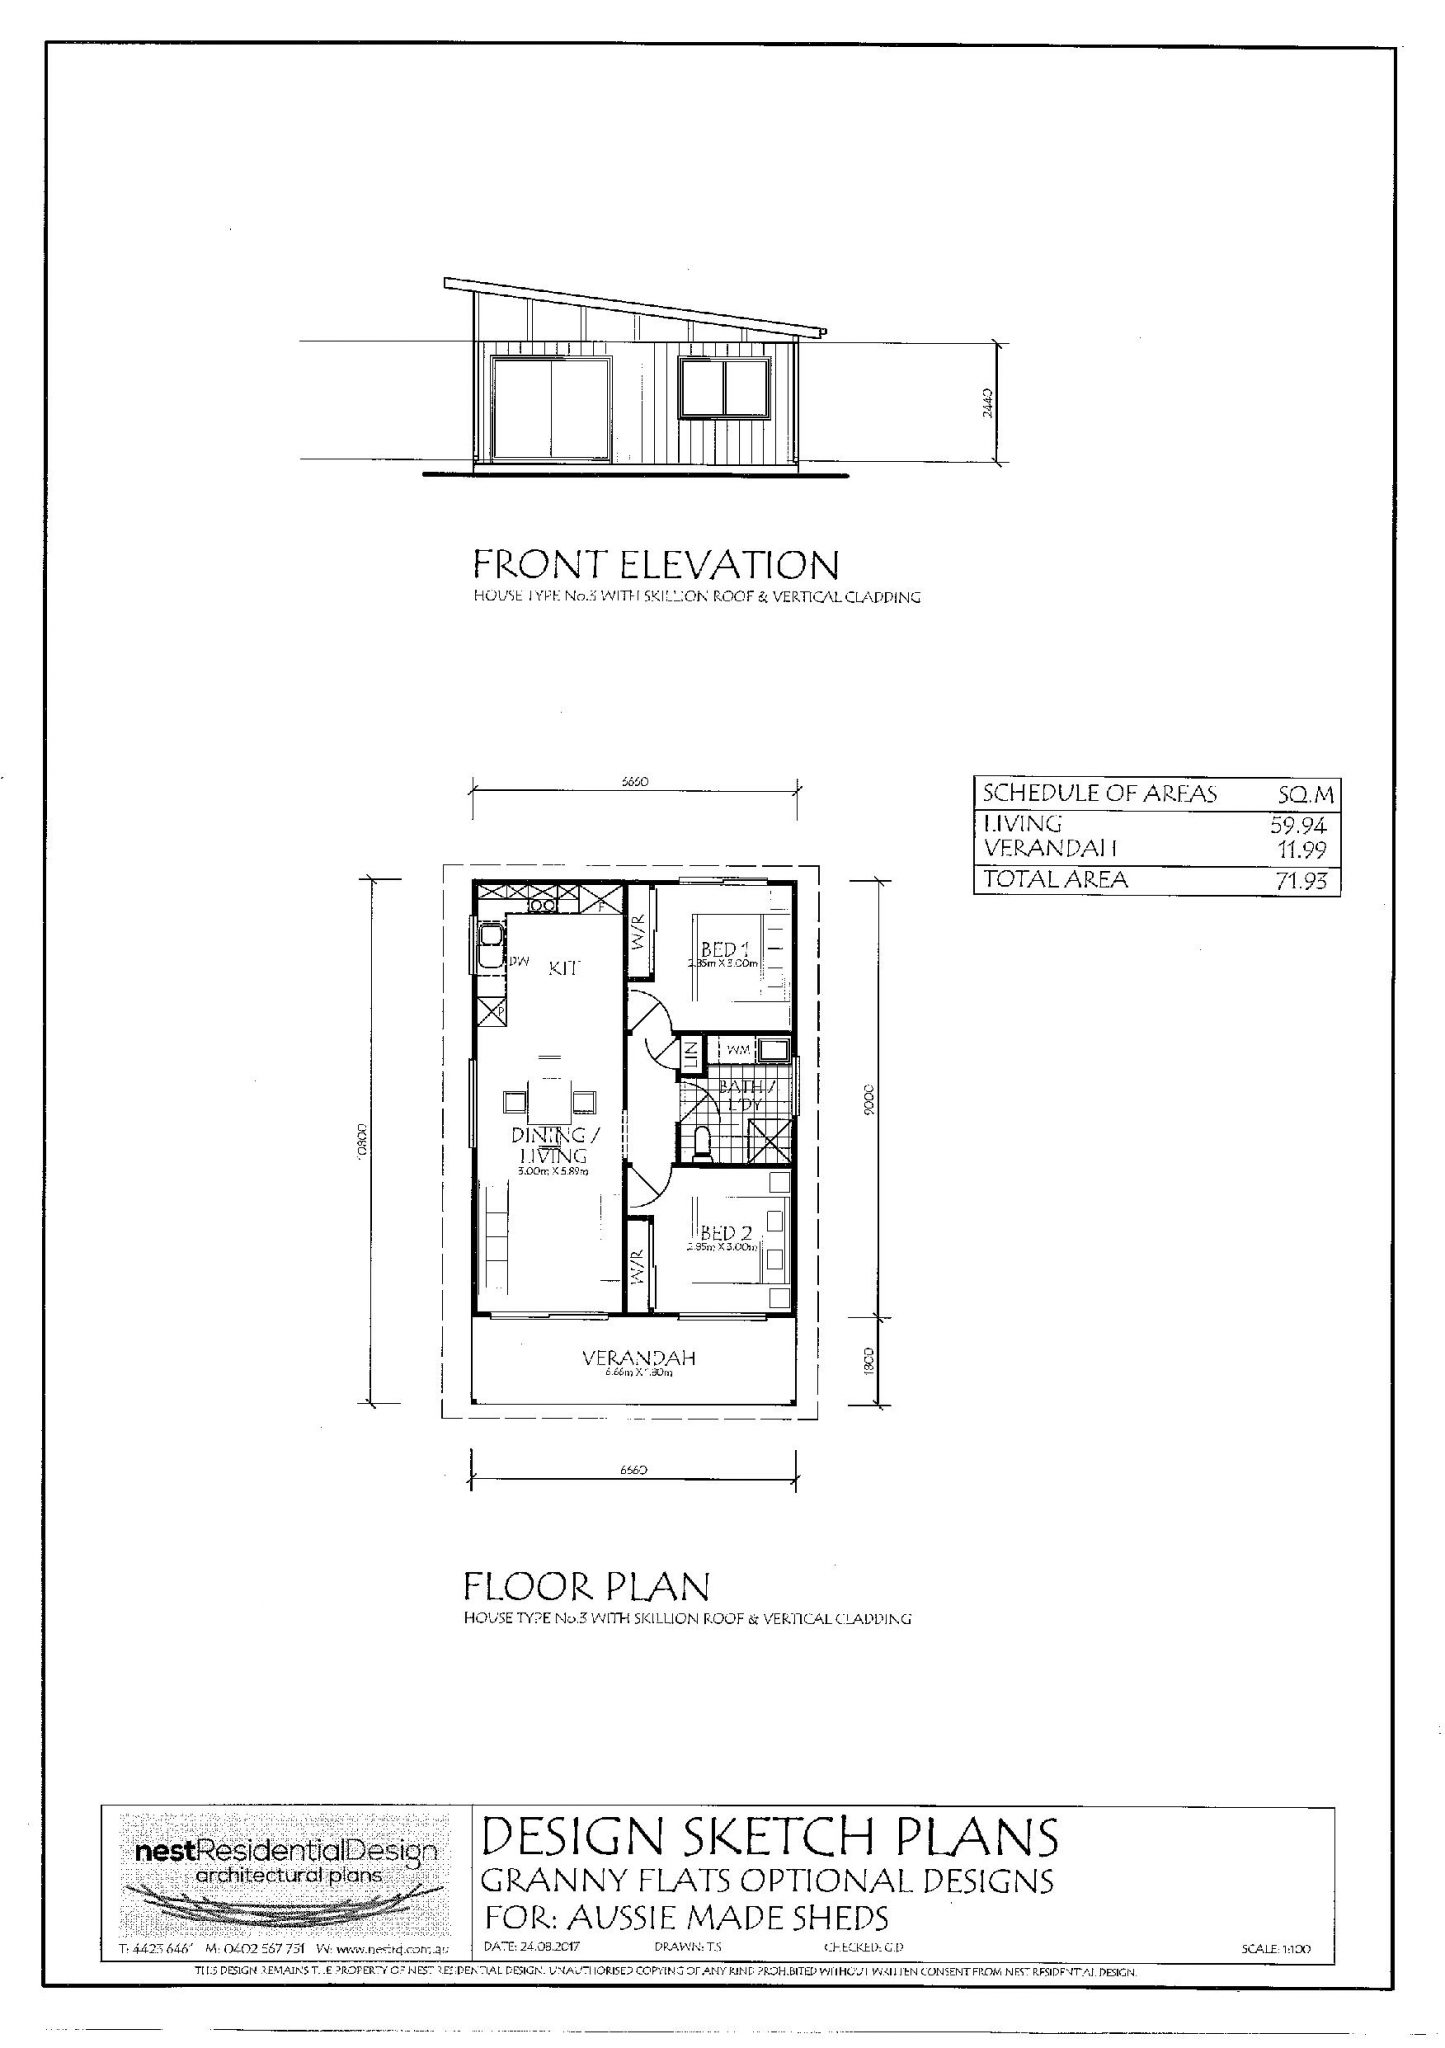 design-sketch-plans-aussie-made-sheds-24-august-2017-rotated-page-006